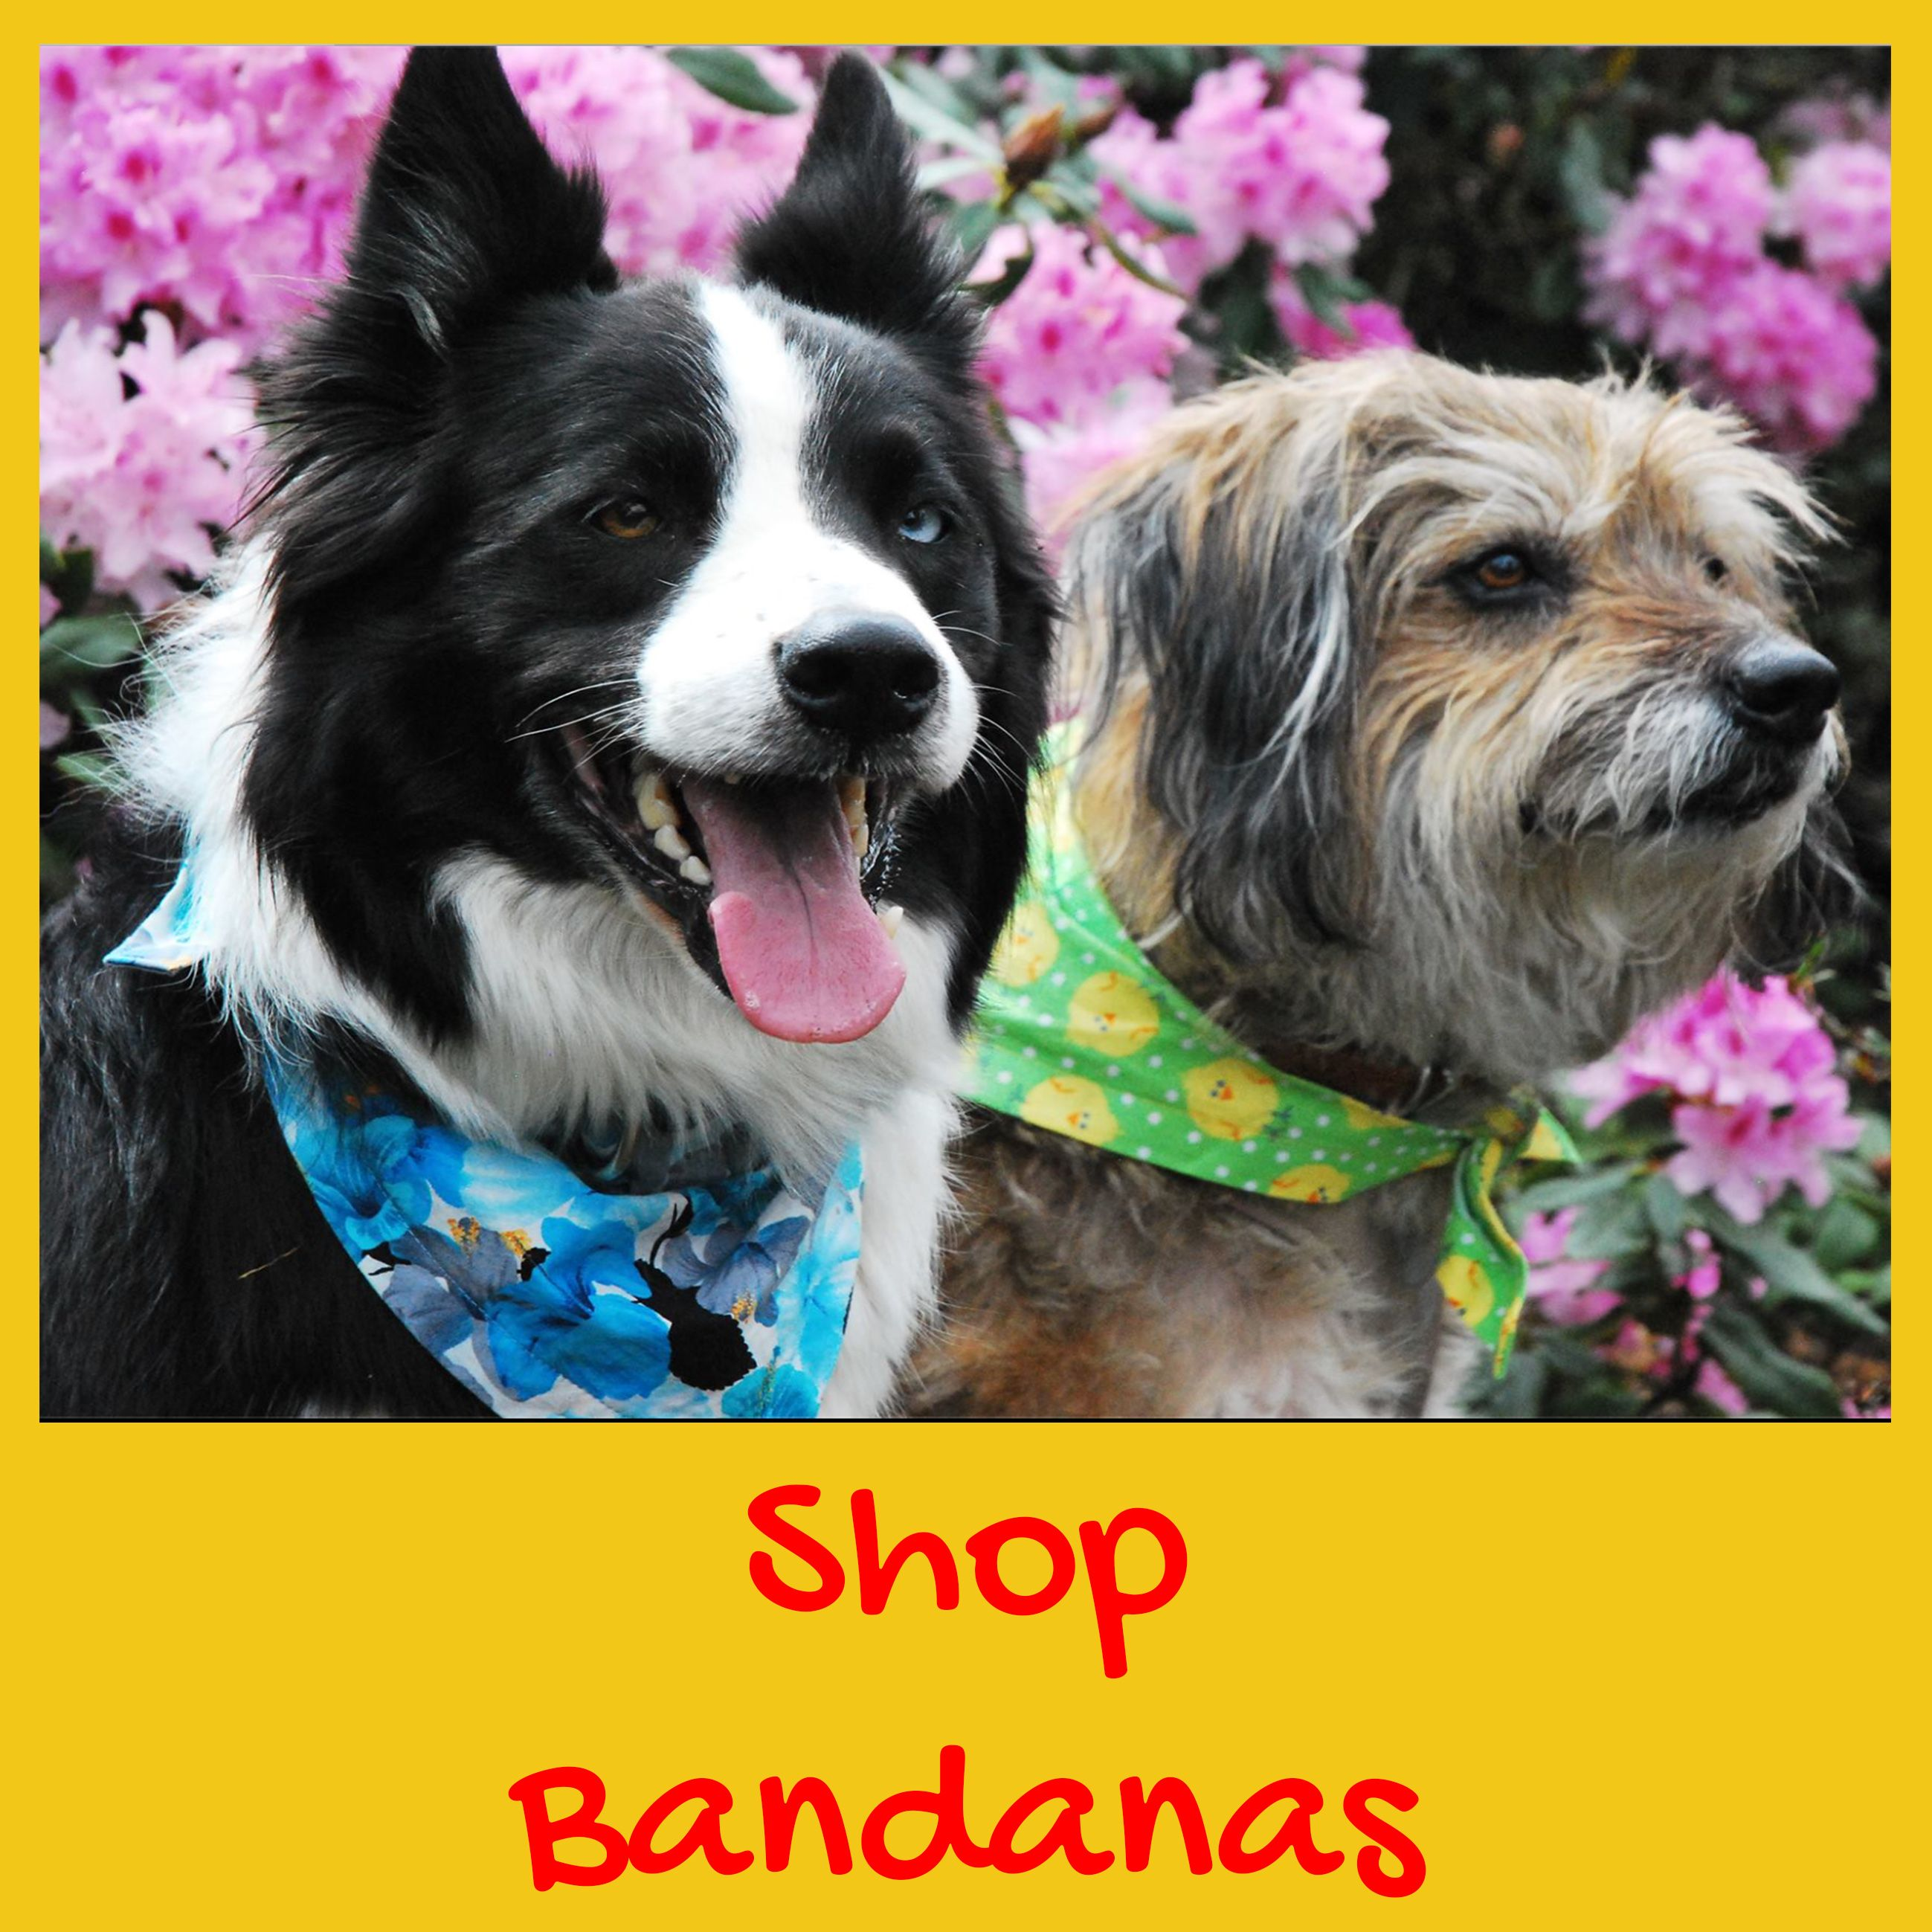 Find the best bandanas for dogs at Dudiedog Bandanas! Handmade in the UK, Free UK p&p